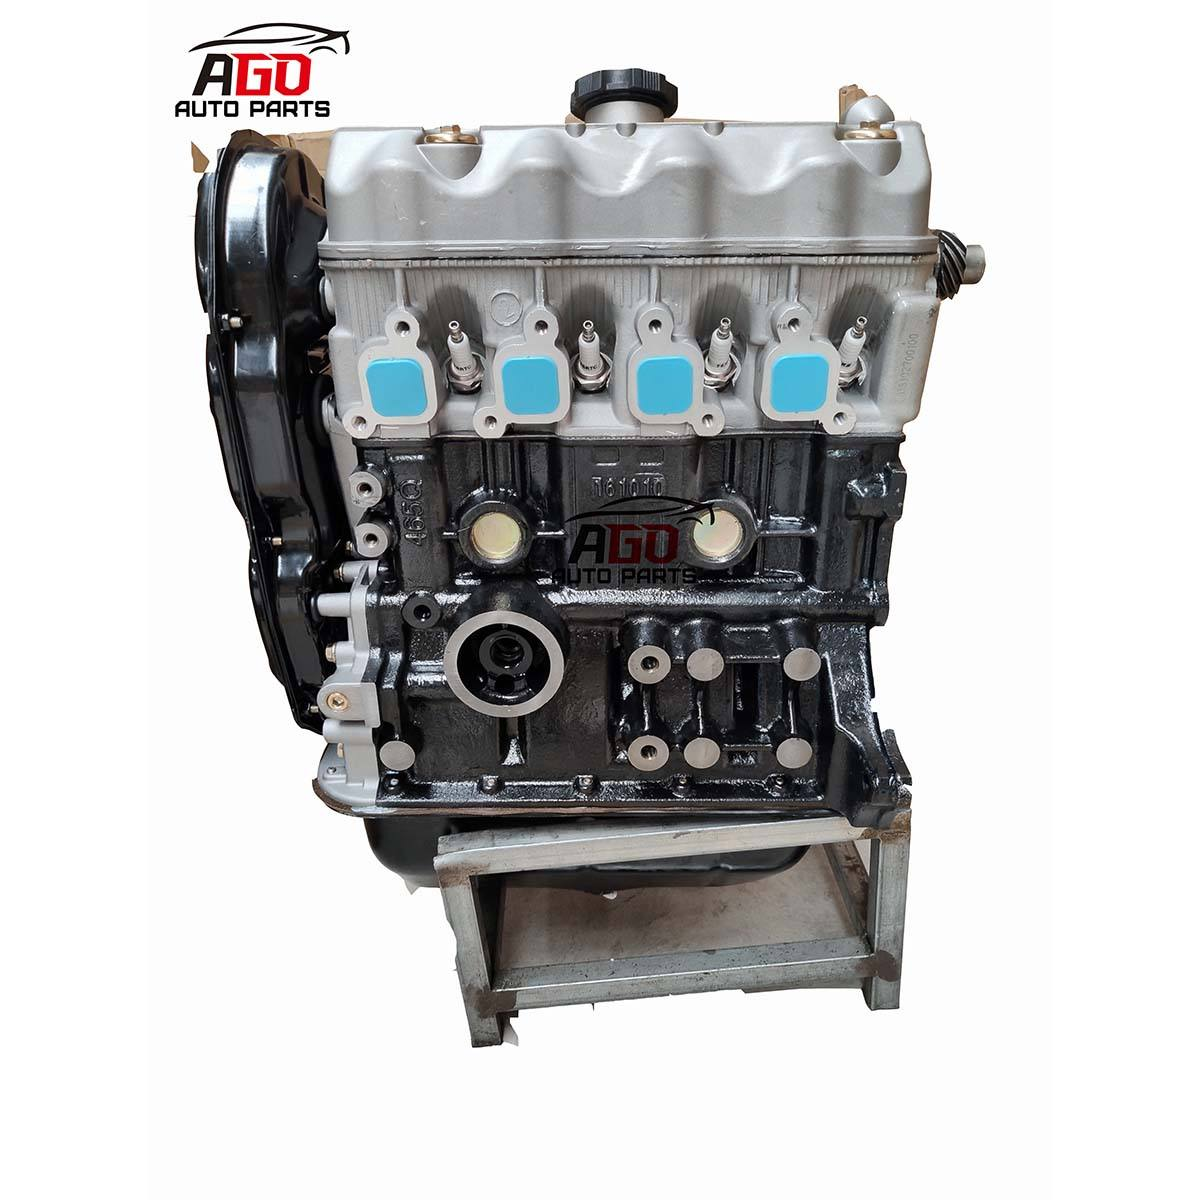 BRAND NEW 465Q F10A ENGINE LONG BLOCK 1.0L FOR CHANA STAR